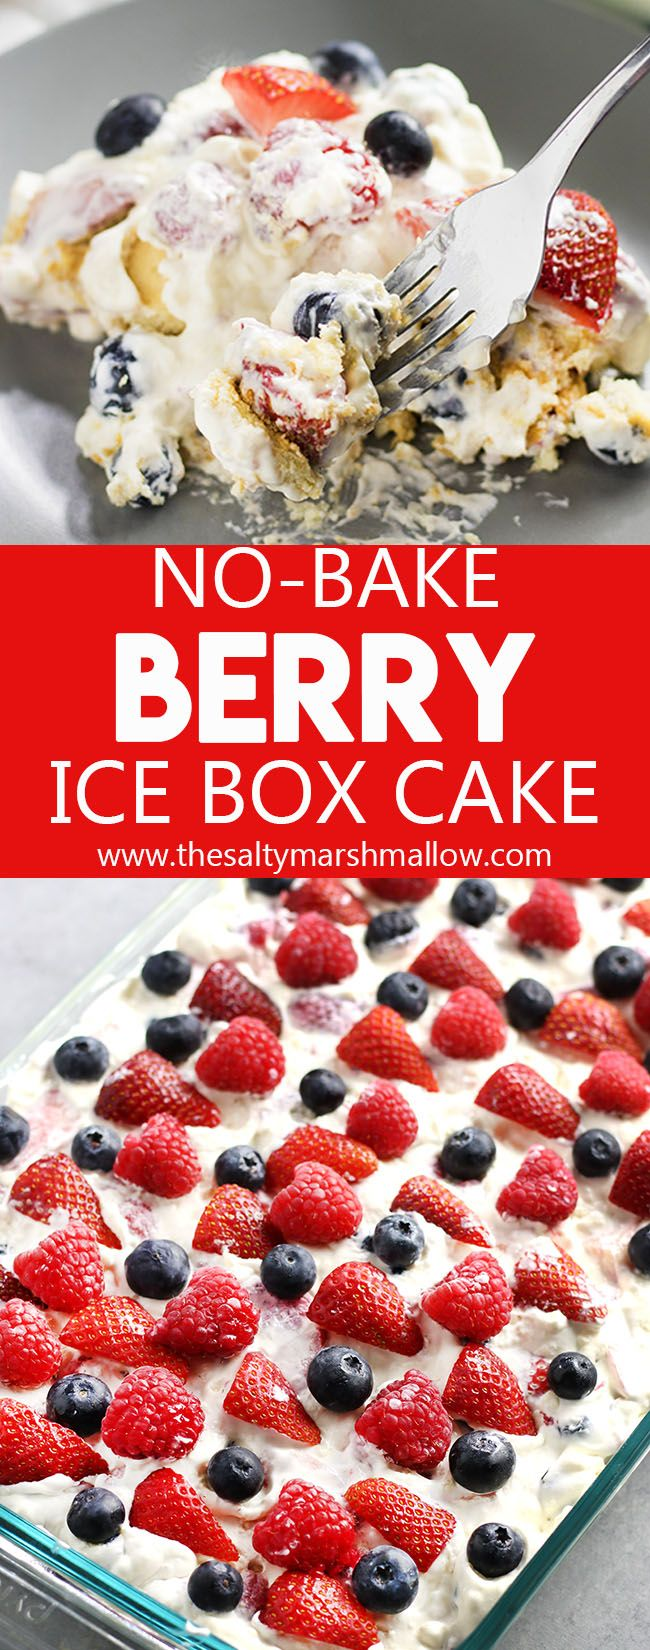 No Bake Berry Ice Box Cake:  This icebox cake is a no bake, cool and creamy summer dessert that's an old fashioned favorite!  Easy to make and full of strawberries, blueberries, and raspberries with creamy pudding layers and graham crackers OR nilla wafers! This dessert makes enough to feed a crowd for Memorial Day or Fourth of July parties.